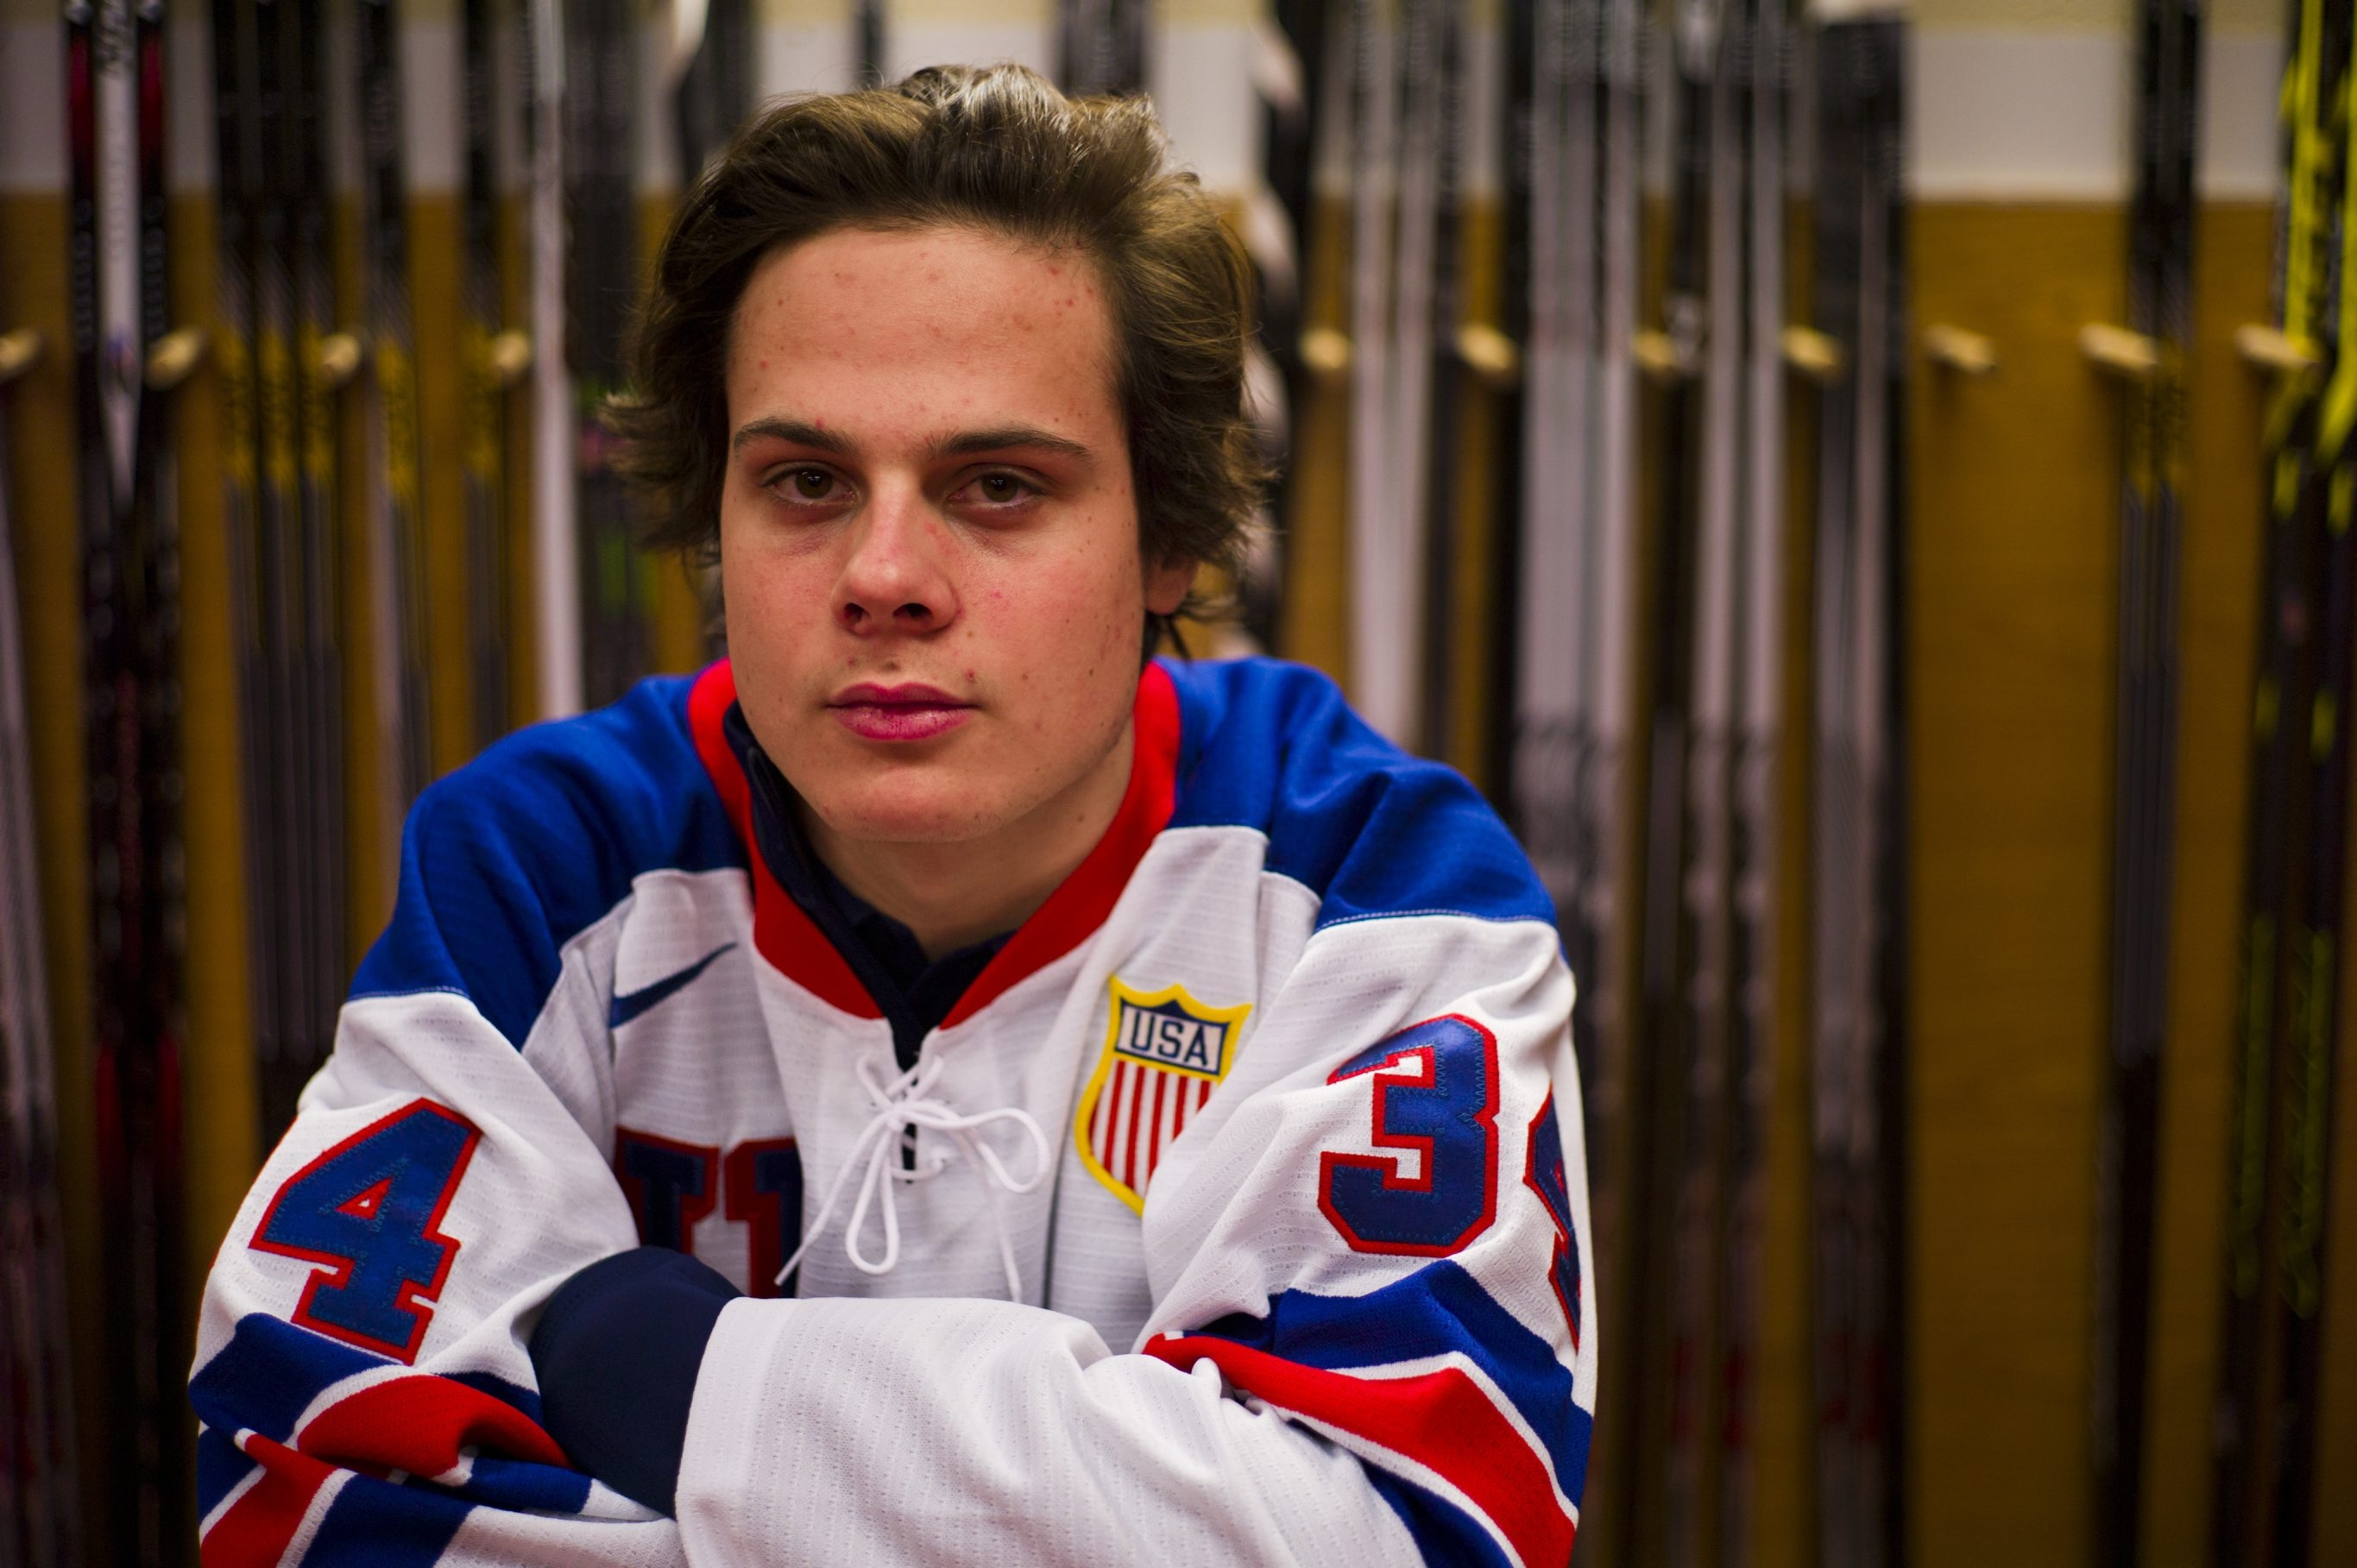 Auston Matthews  spent last season in Switzerland honing his game at the professional level. The Sabres will see a lot of him in the coming years. Maybe too much?